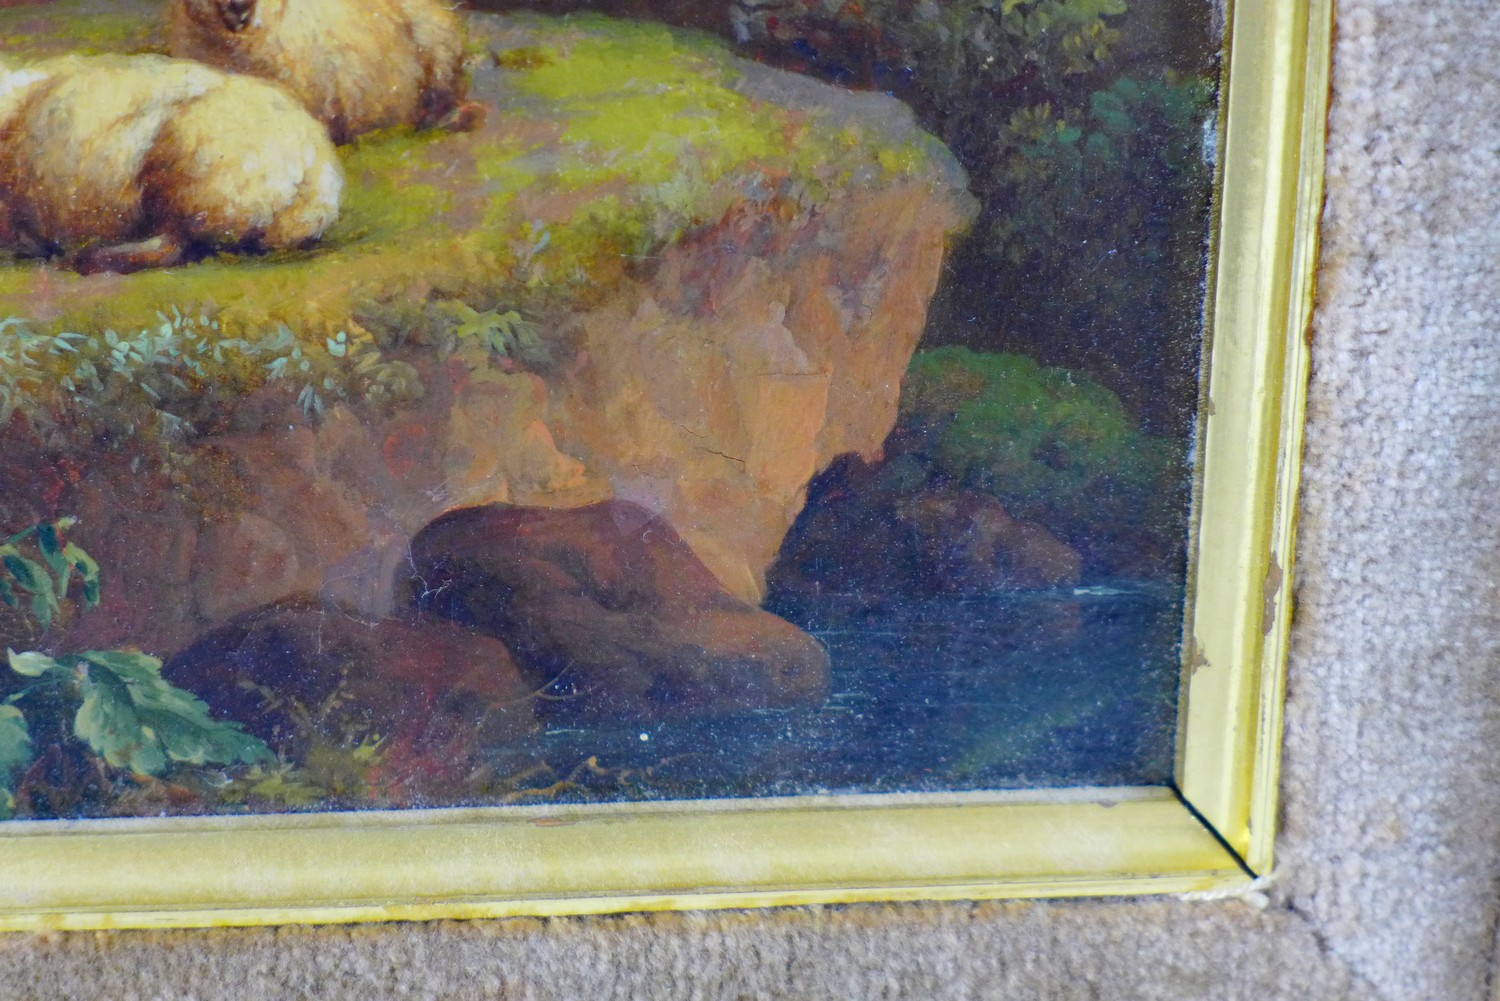 Attributed to Charles Towne (British, 1763-1840): 'Landscape & Cattle', signed 'Town' to a rock in - Image 6 of 11